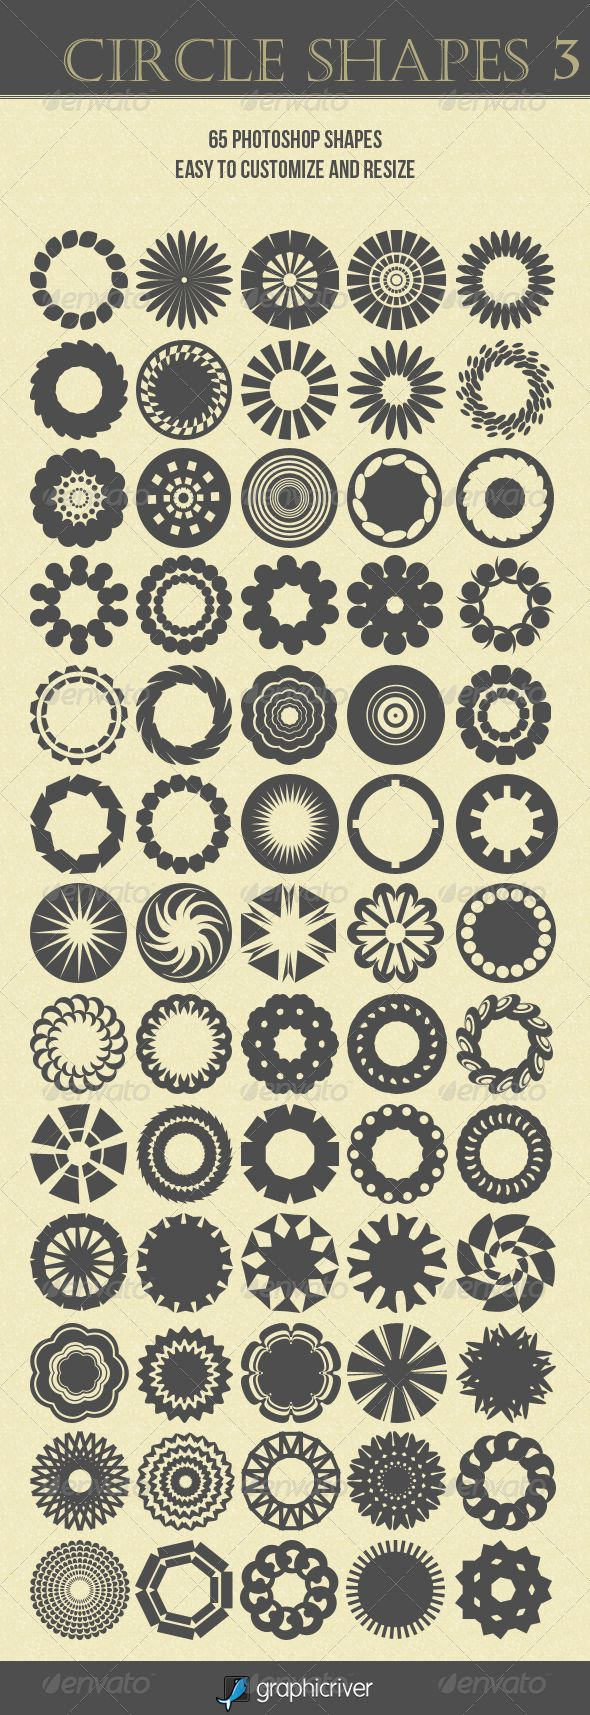 Circle Shapes 3  #GraphicRiver         Set of 65 circle shapes easy to customize and resize.   The pack includes: 1) .CSH file with 65 circle shapes 2)Instruction .txt How to Install   I hope You like it!     Created: 8May12 Add-onFilesIncluded: PhotoshopCSH MinimumAdobeCSVersion: CS Tags: black #circle #customize #modern #radial #ring #round #shape #shapes #various #vector